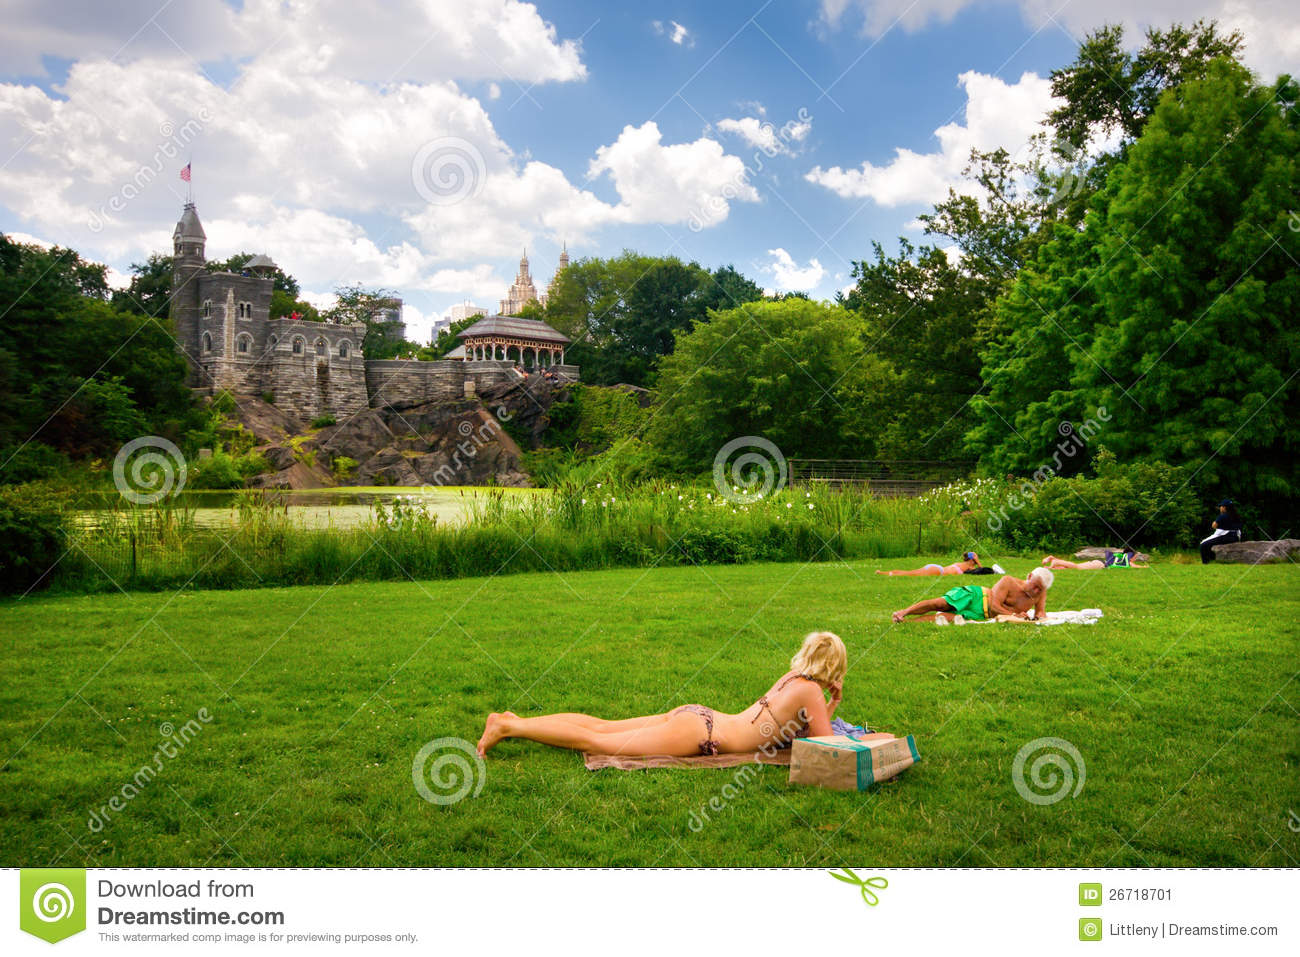 NEW YORK CITY, NY - JULY 24: Sunbathers on lawn in Central Park New ...